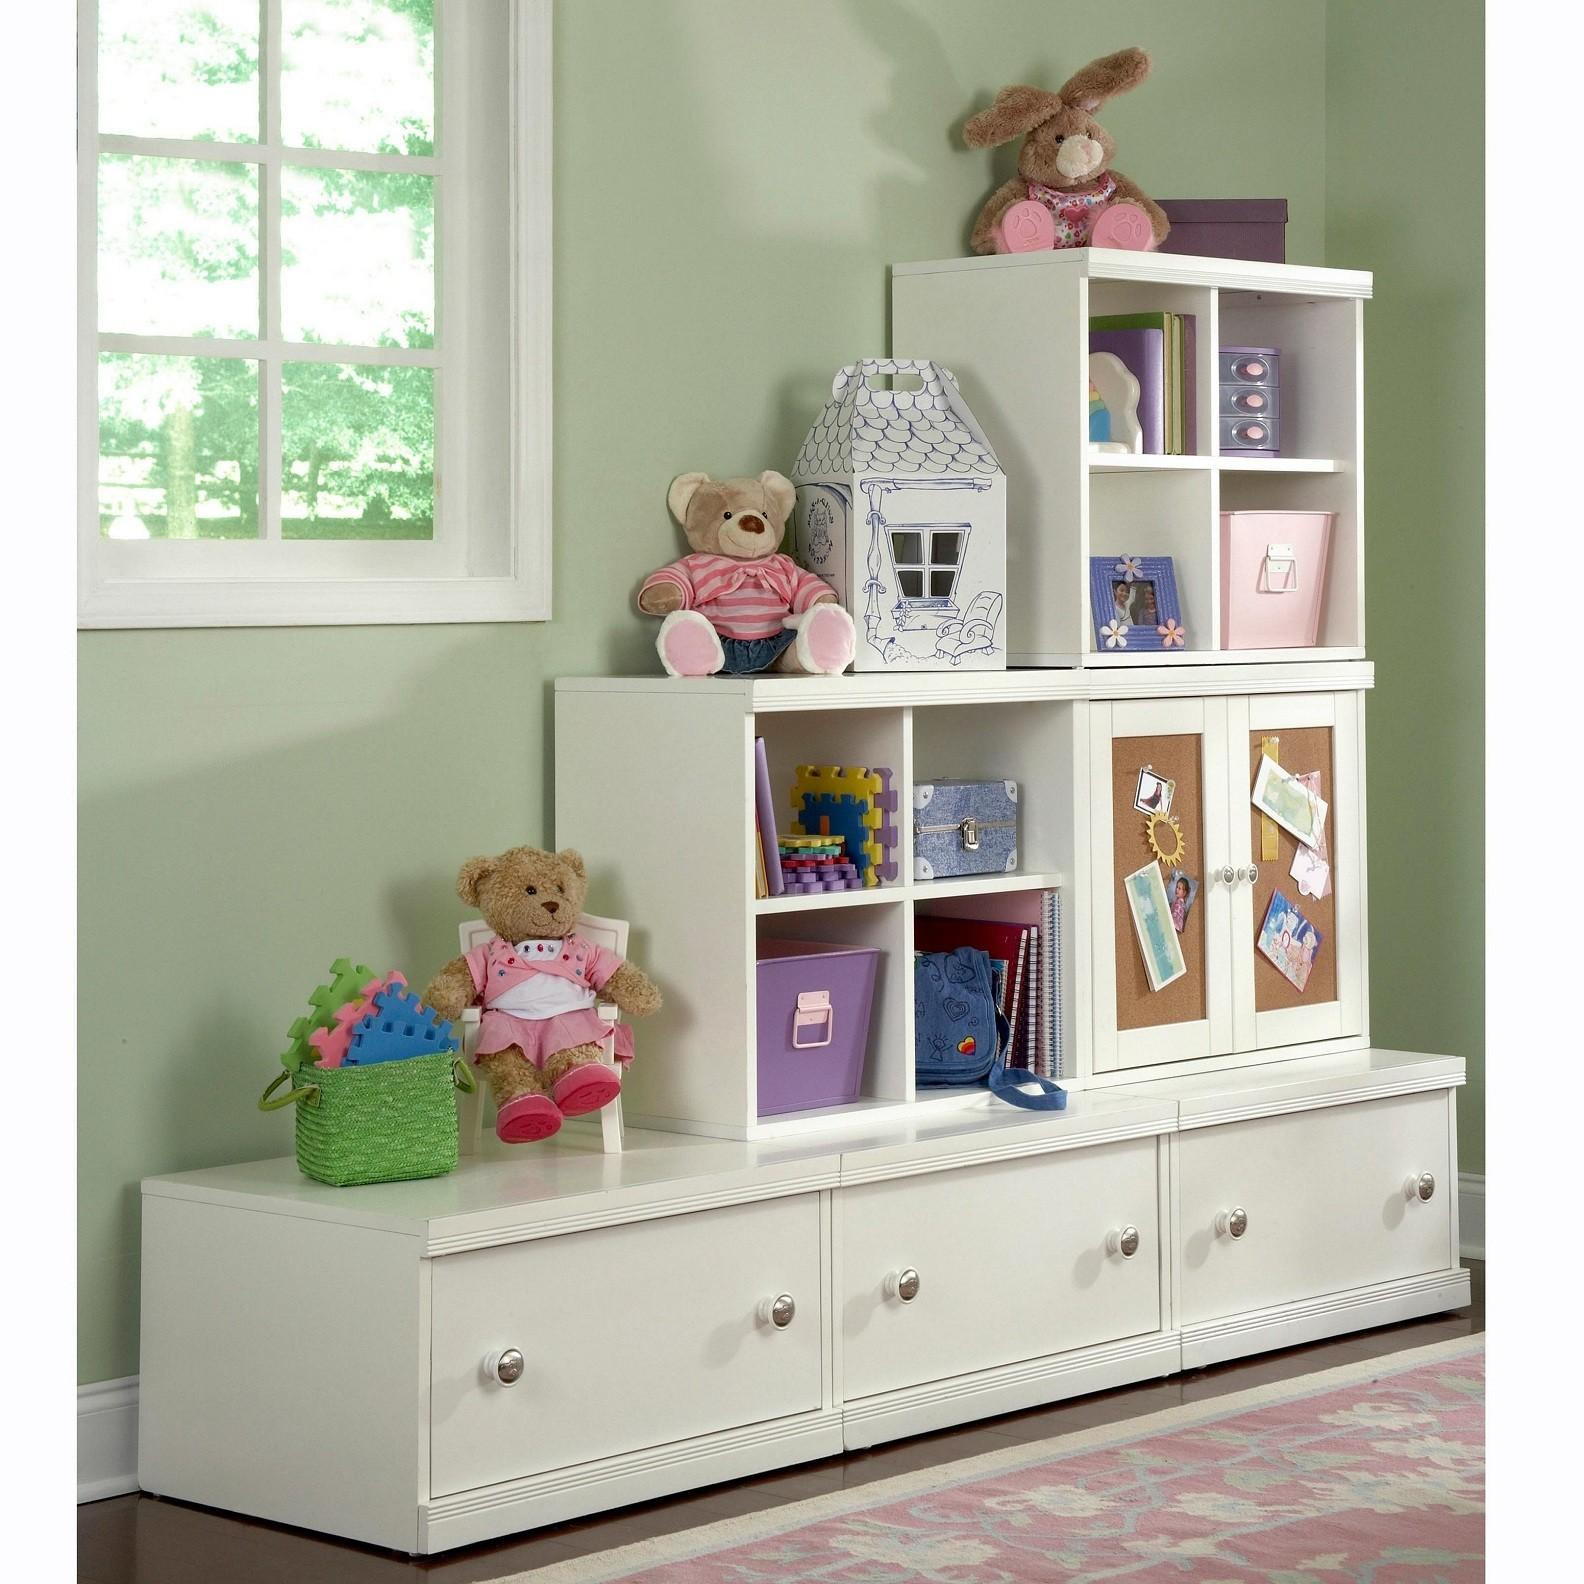 Toy Organizer Ideas More Organized Home